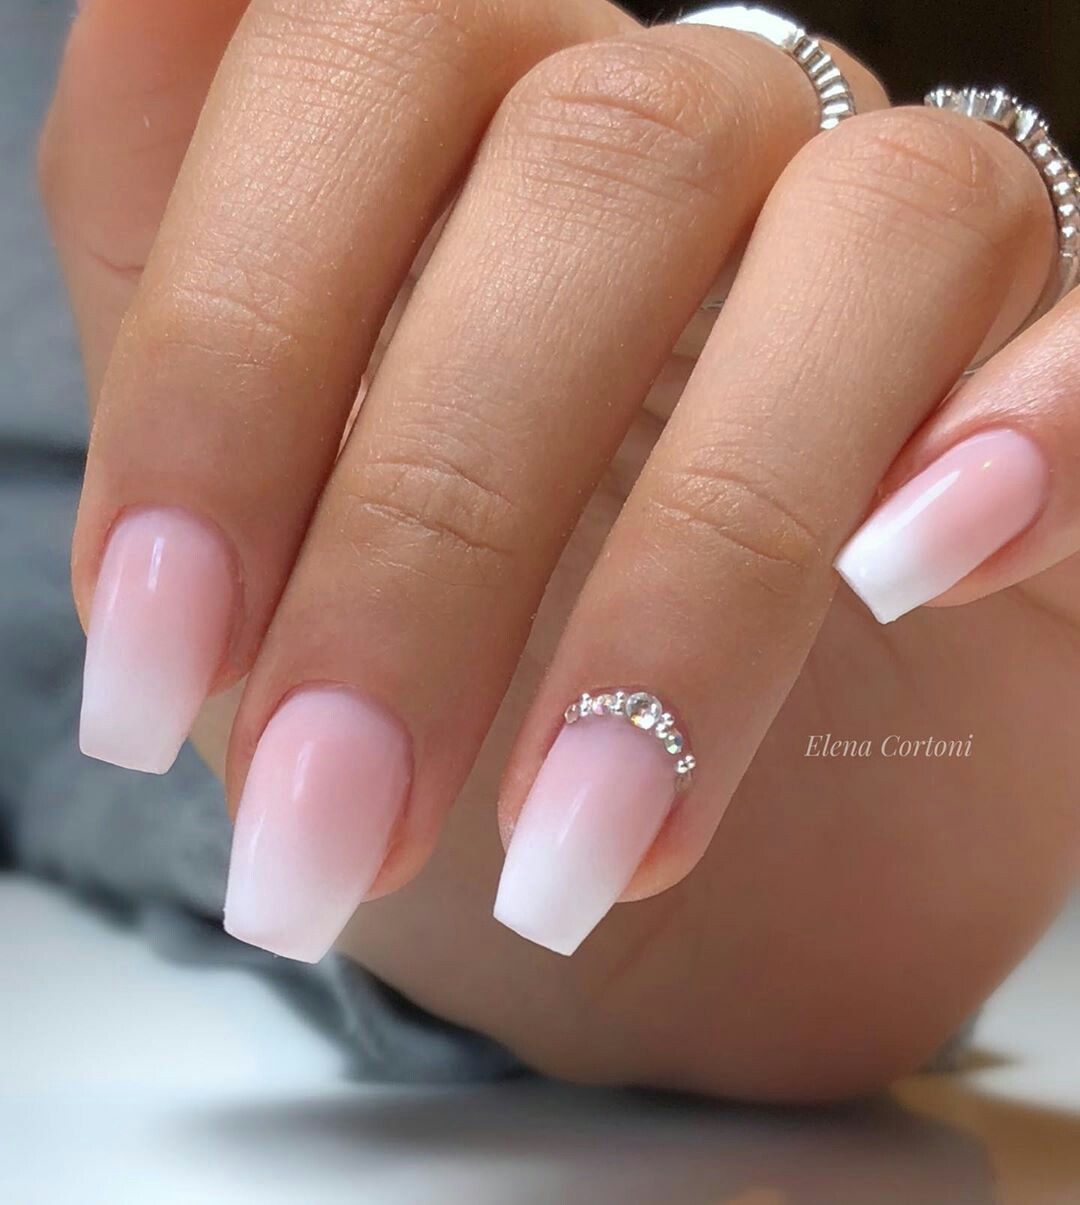 How To Do French Ombre Dip Nails Stylish Belles Short Acrylic Nails Designs Coffin Shape Nails Nails Design With Rhinestones